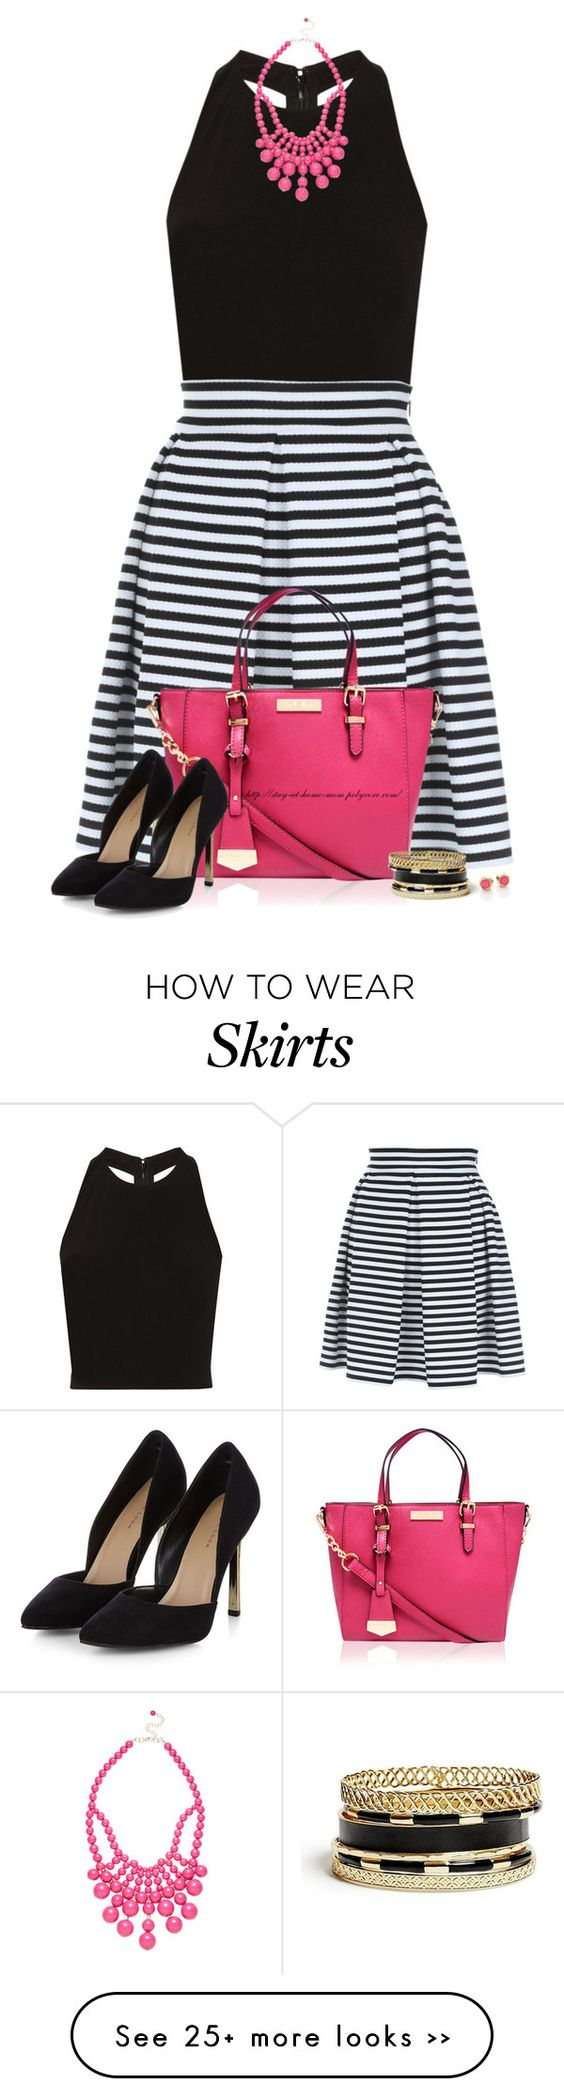 """Striped Skater Skirt"" by stay-at-home-mom on Polyvore featuring Alice + Olivia, Jane Norman, Ashley Stewart, Carvela Kurt Geiger, Marc by Marc Jacobs and GUESS"